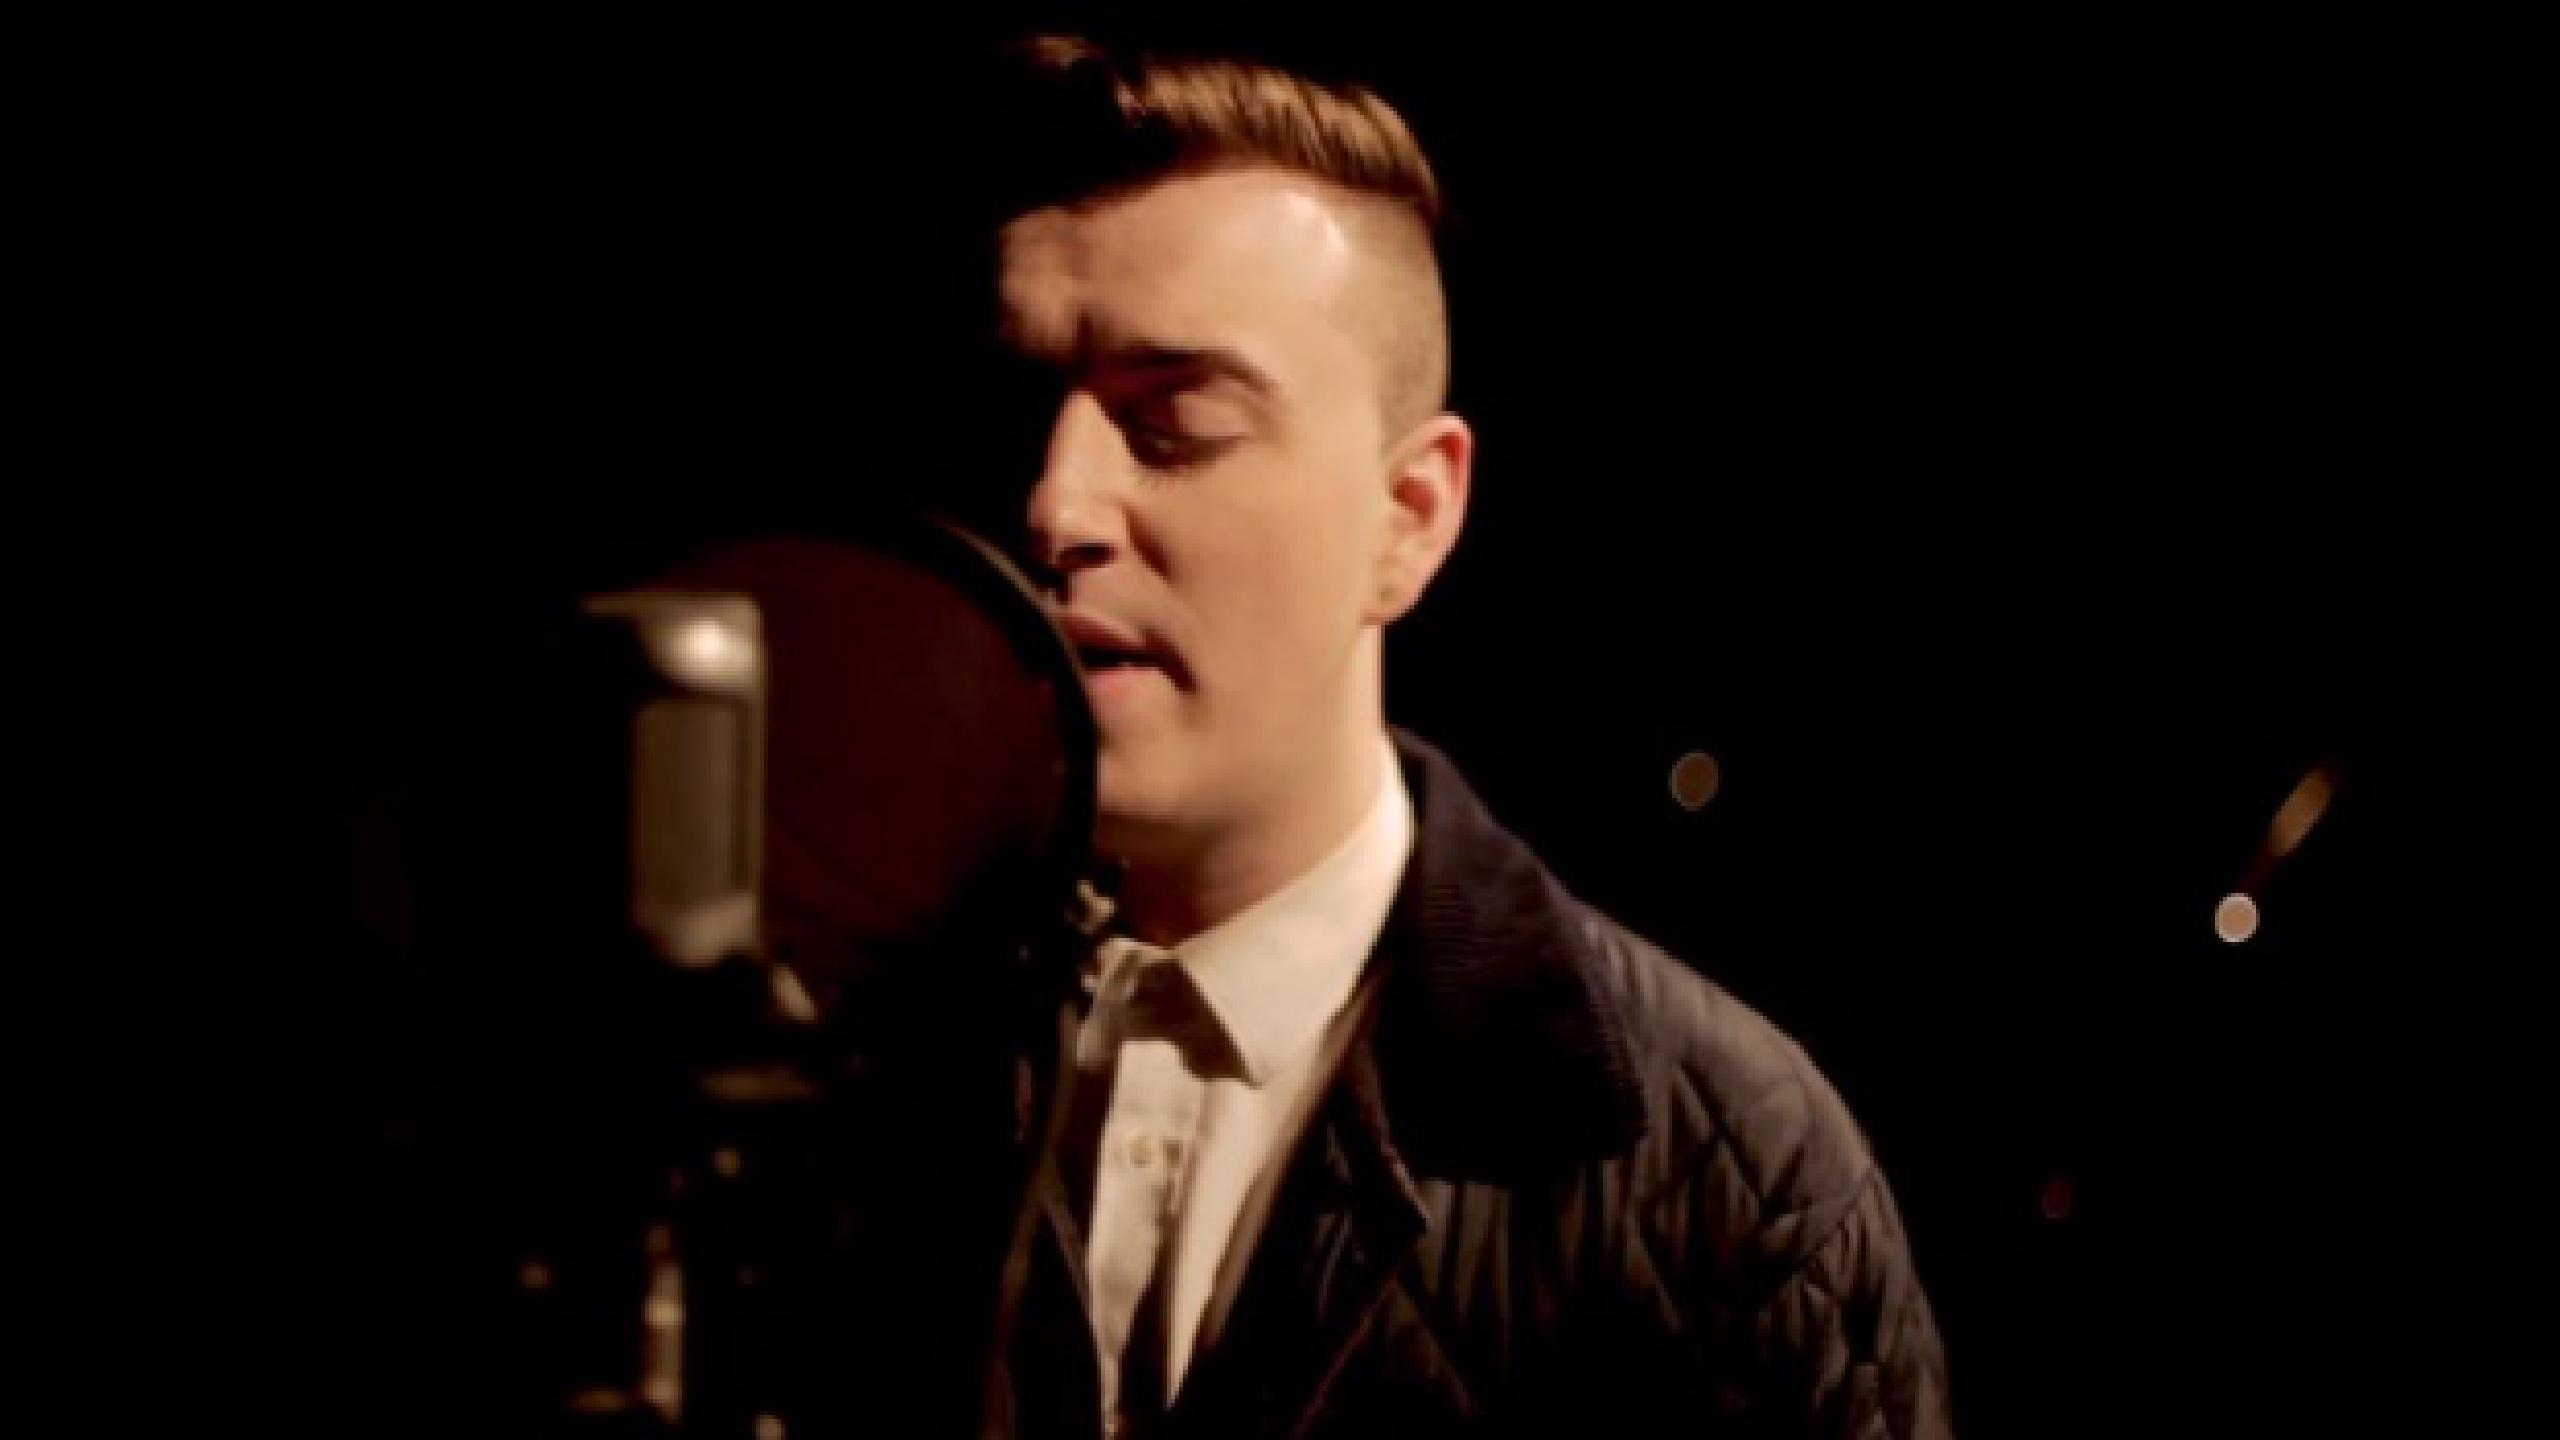 Sam Smith Tour 2020.Sam Smith Tour Dates 2019 2020 Sam Smith Tickets And